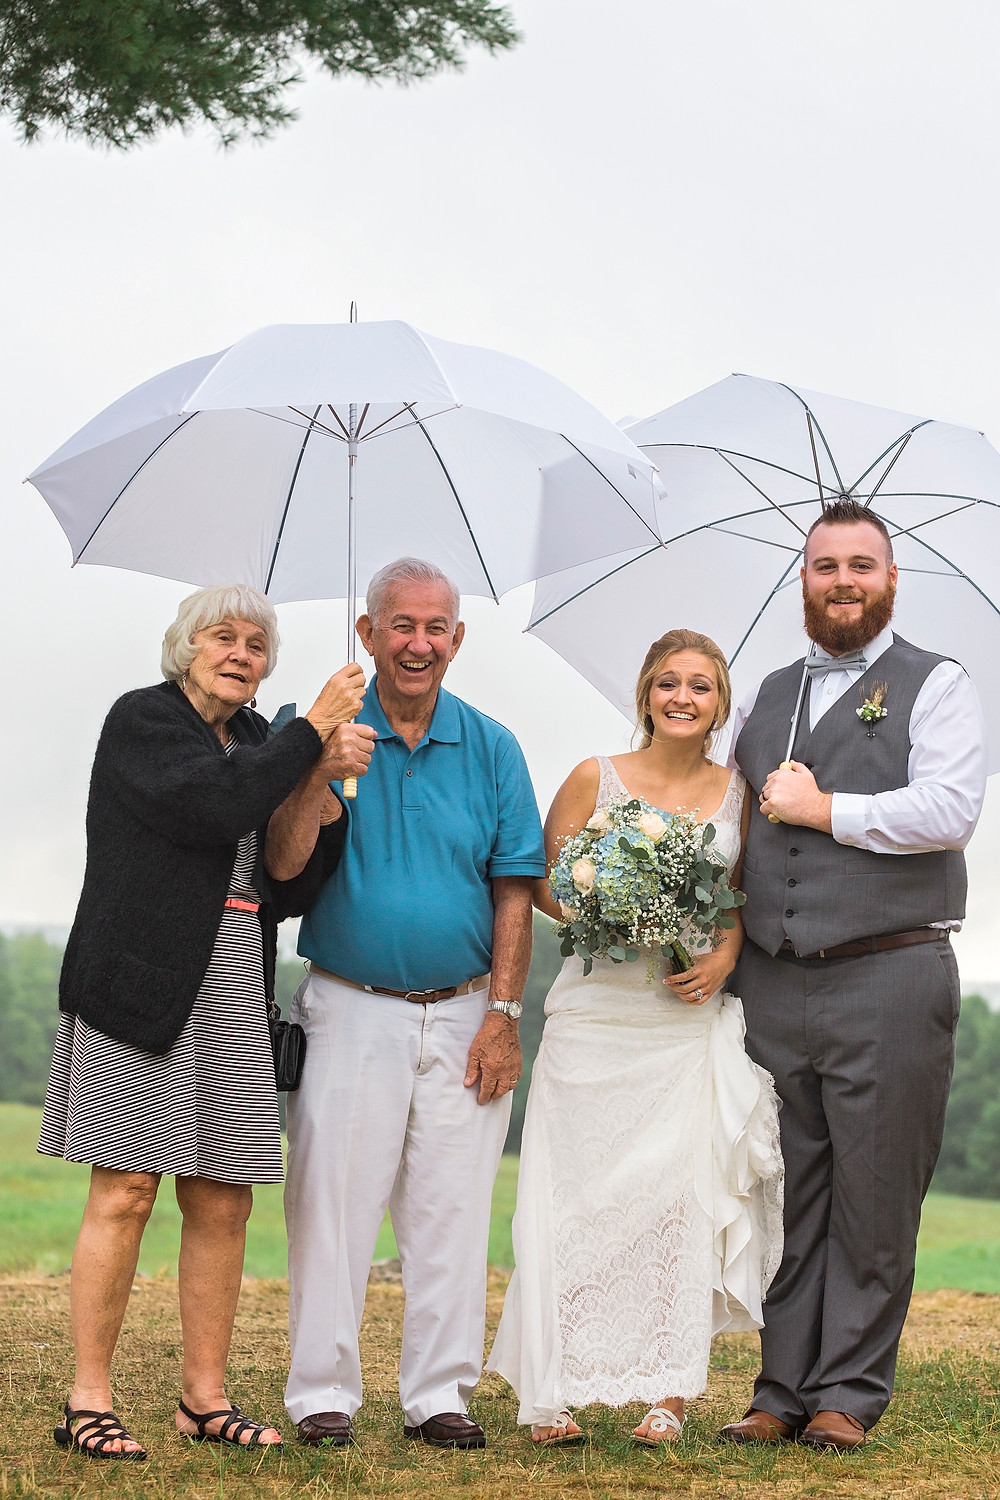 Bride and groom holding umbrella with grandparents on their wedding day